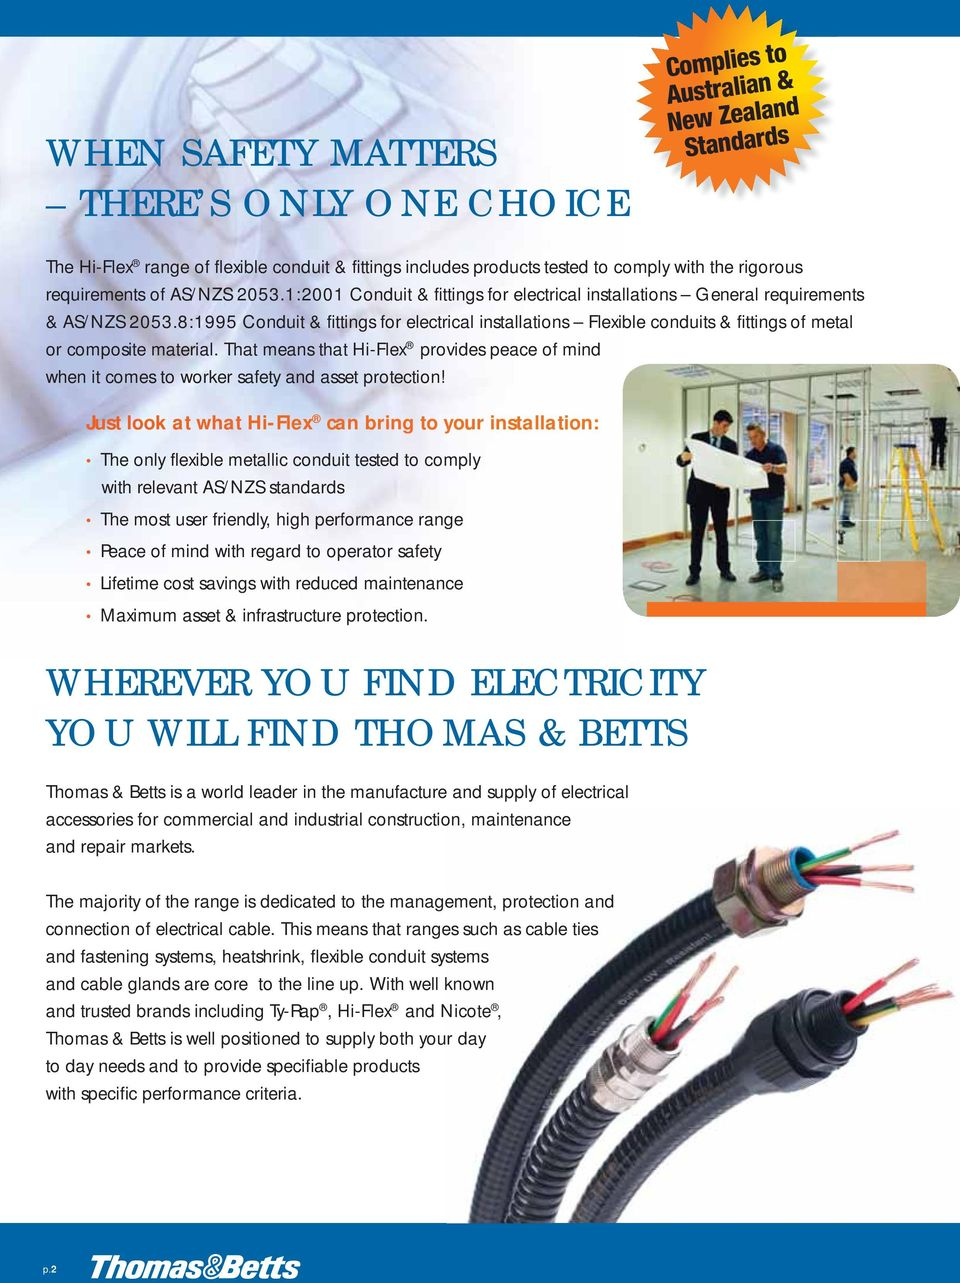 Complies To Australian New Zealand Standards Flexible Conduit Wiring Code Colours 81995 Fittings For Electrical Installations Conduits Of Metal Or